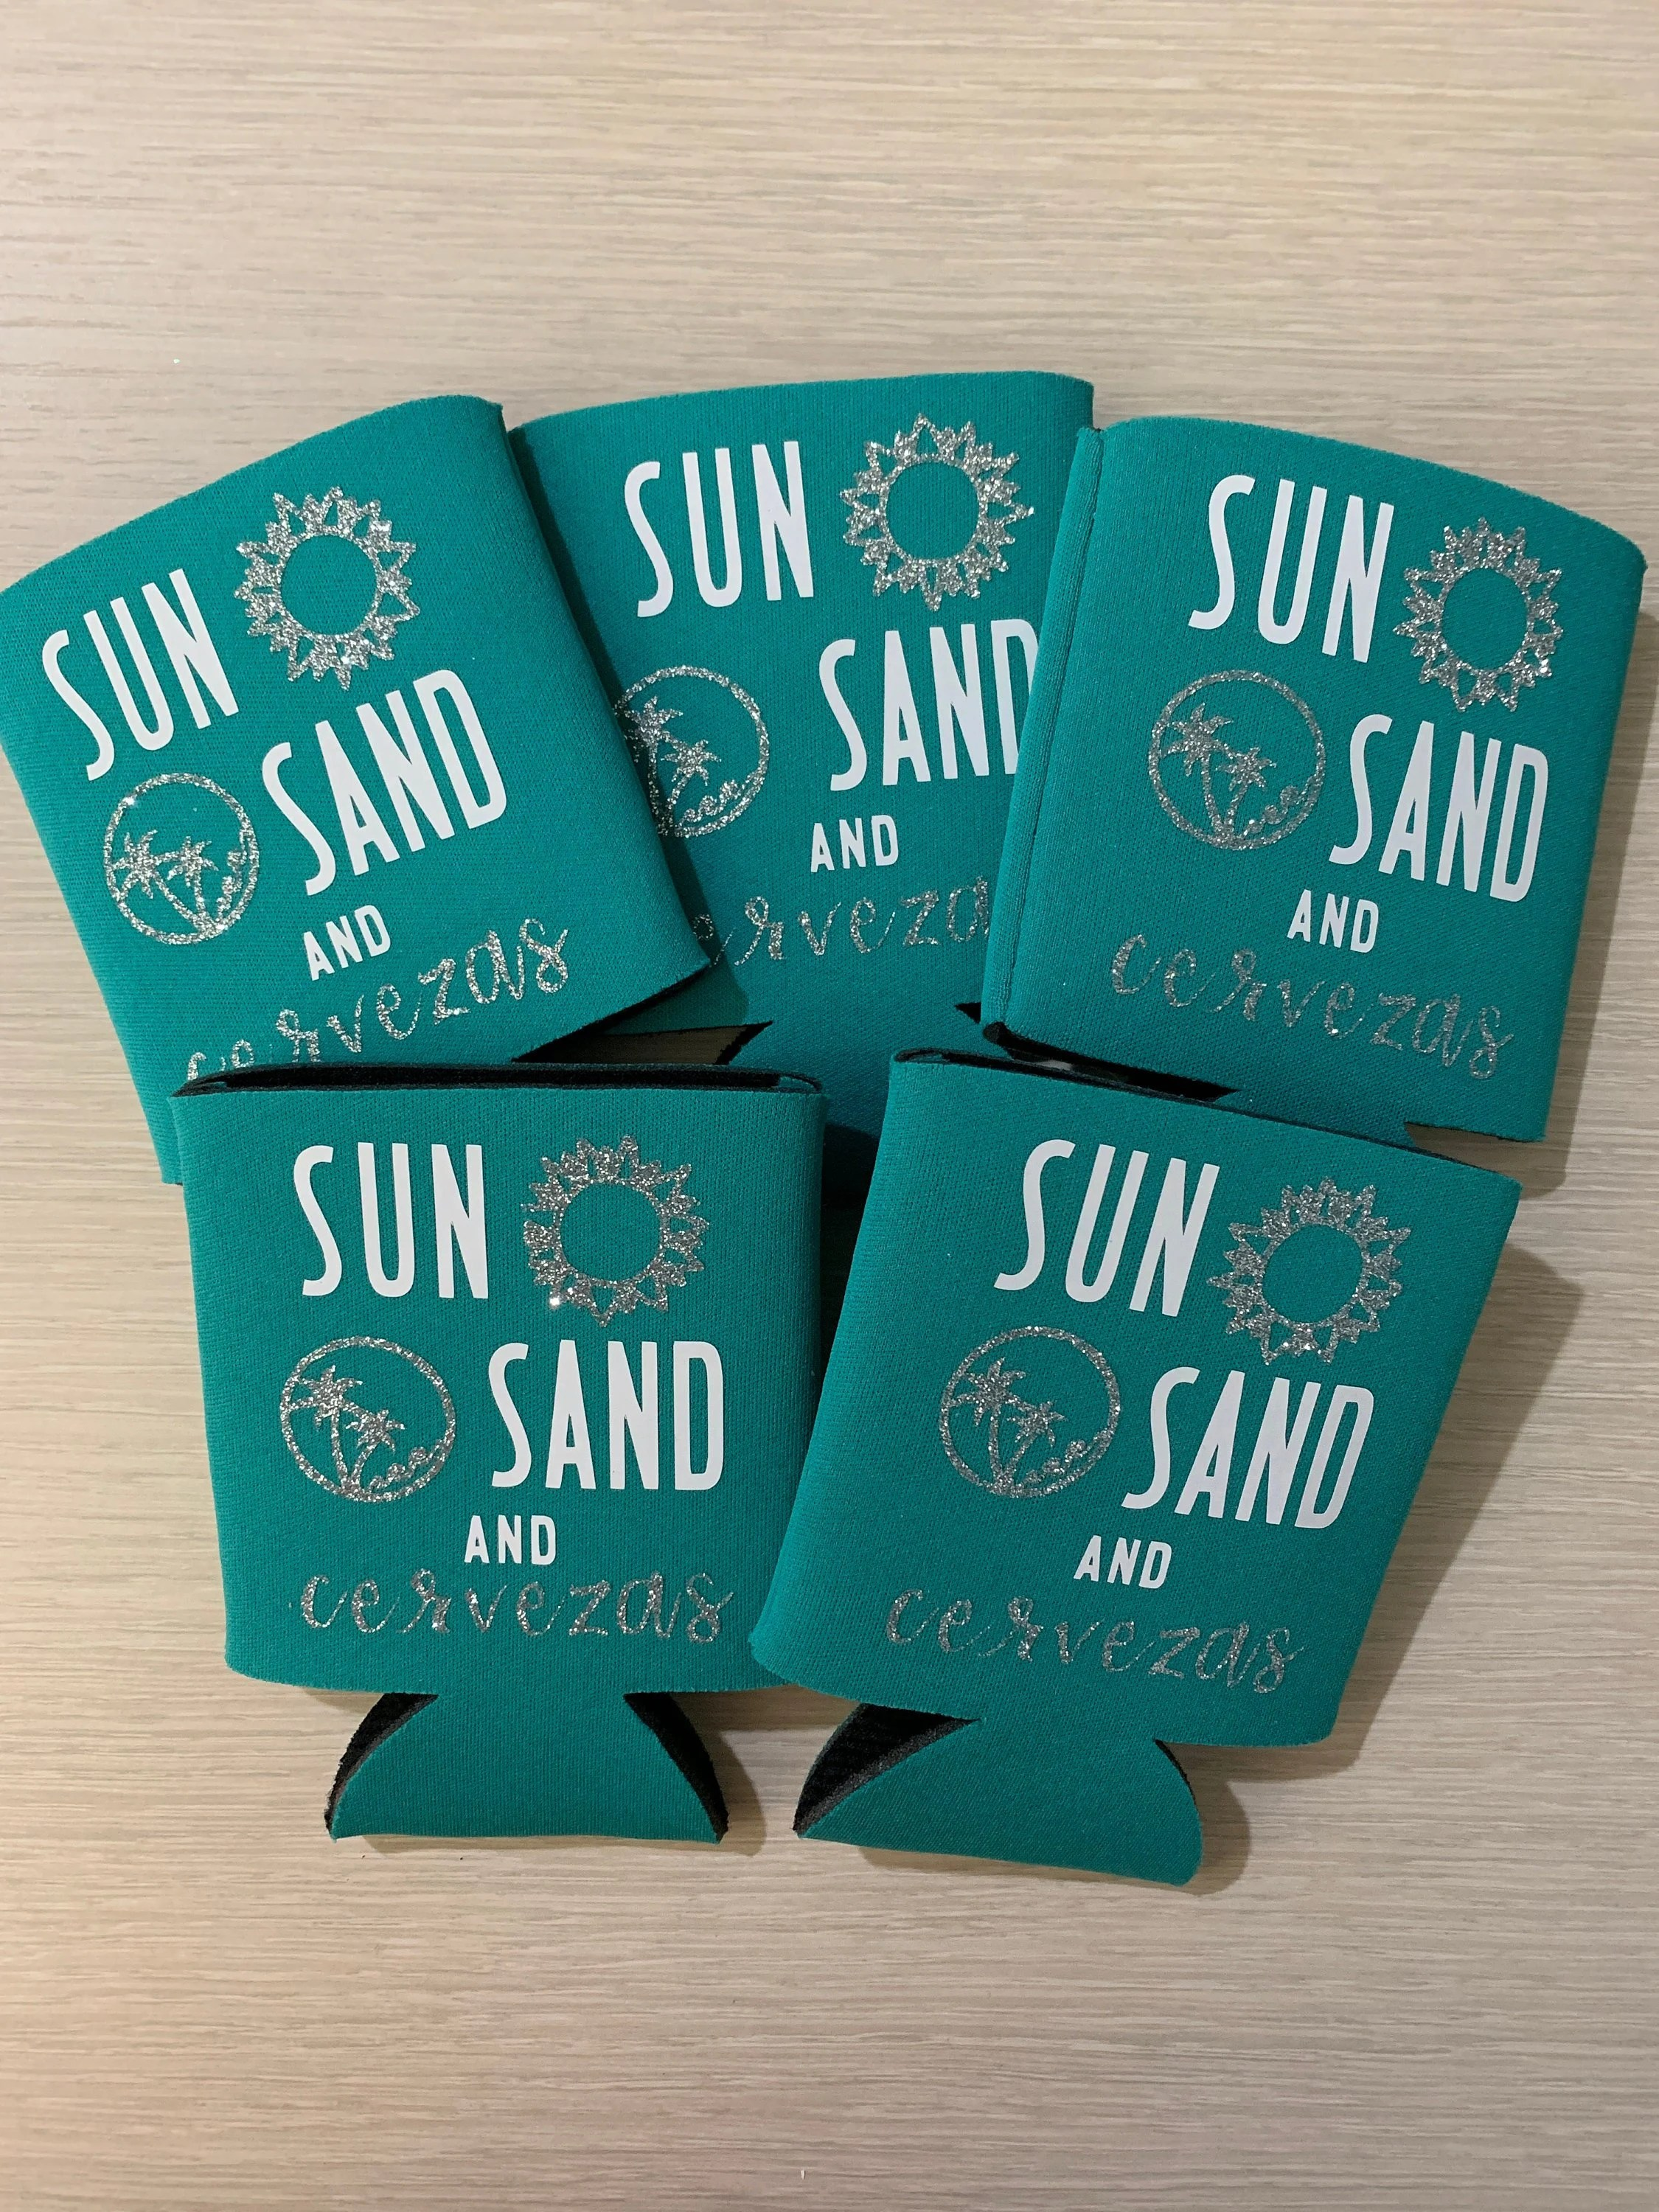 Sun Sand And Cervezas Koozies Vacation Koozies Vacation Etsy